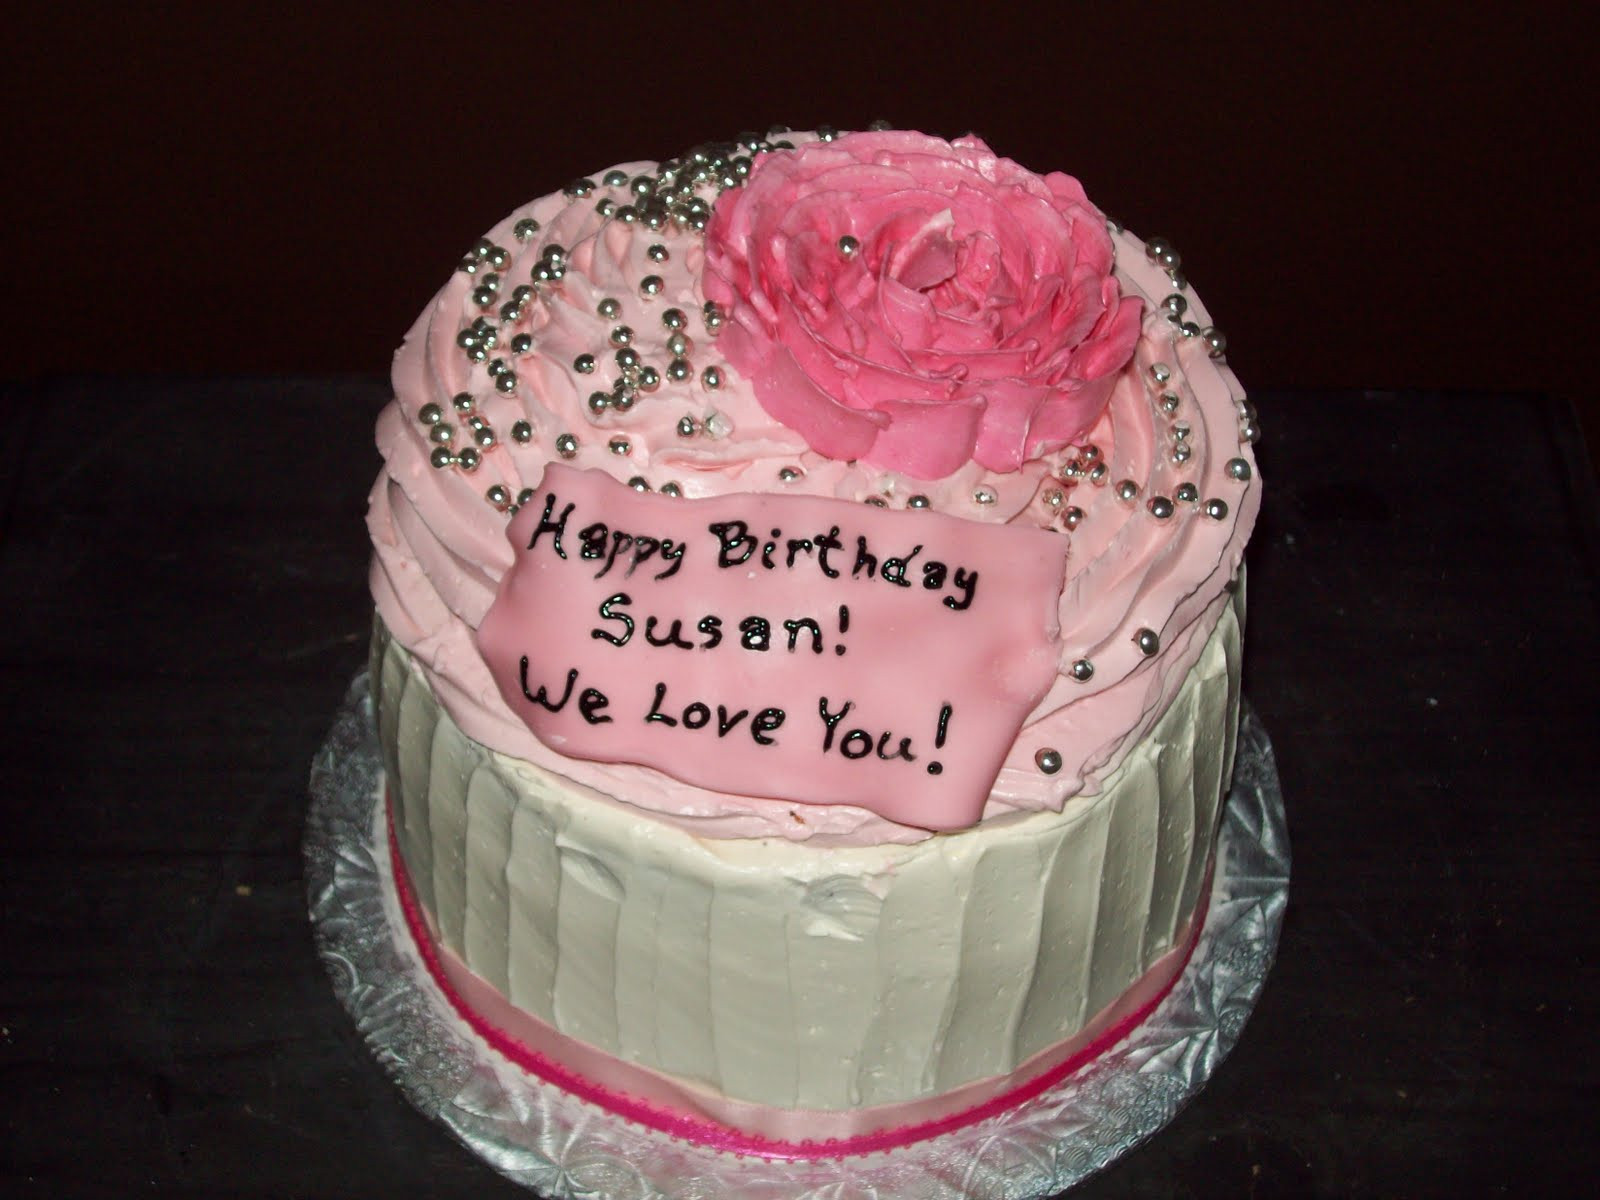 Happy Birthday Susan Cake  Free Embroidery Designs Cute Embroidery Designs